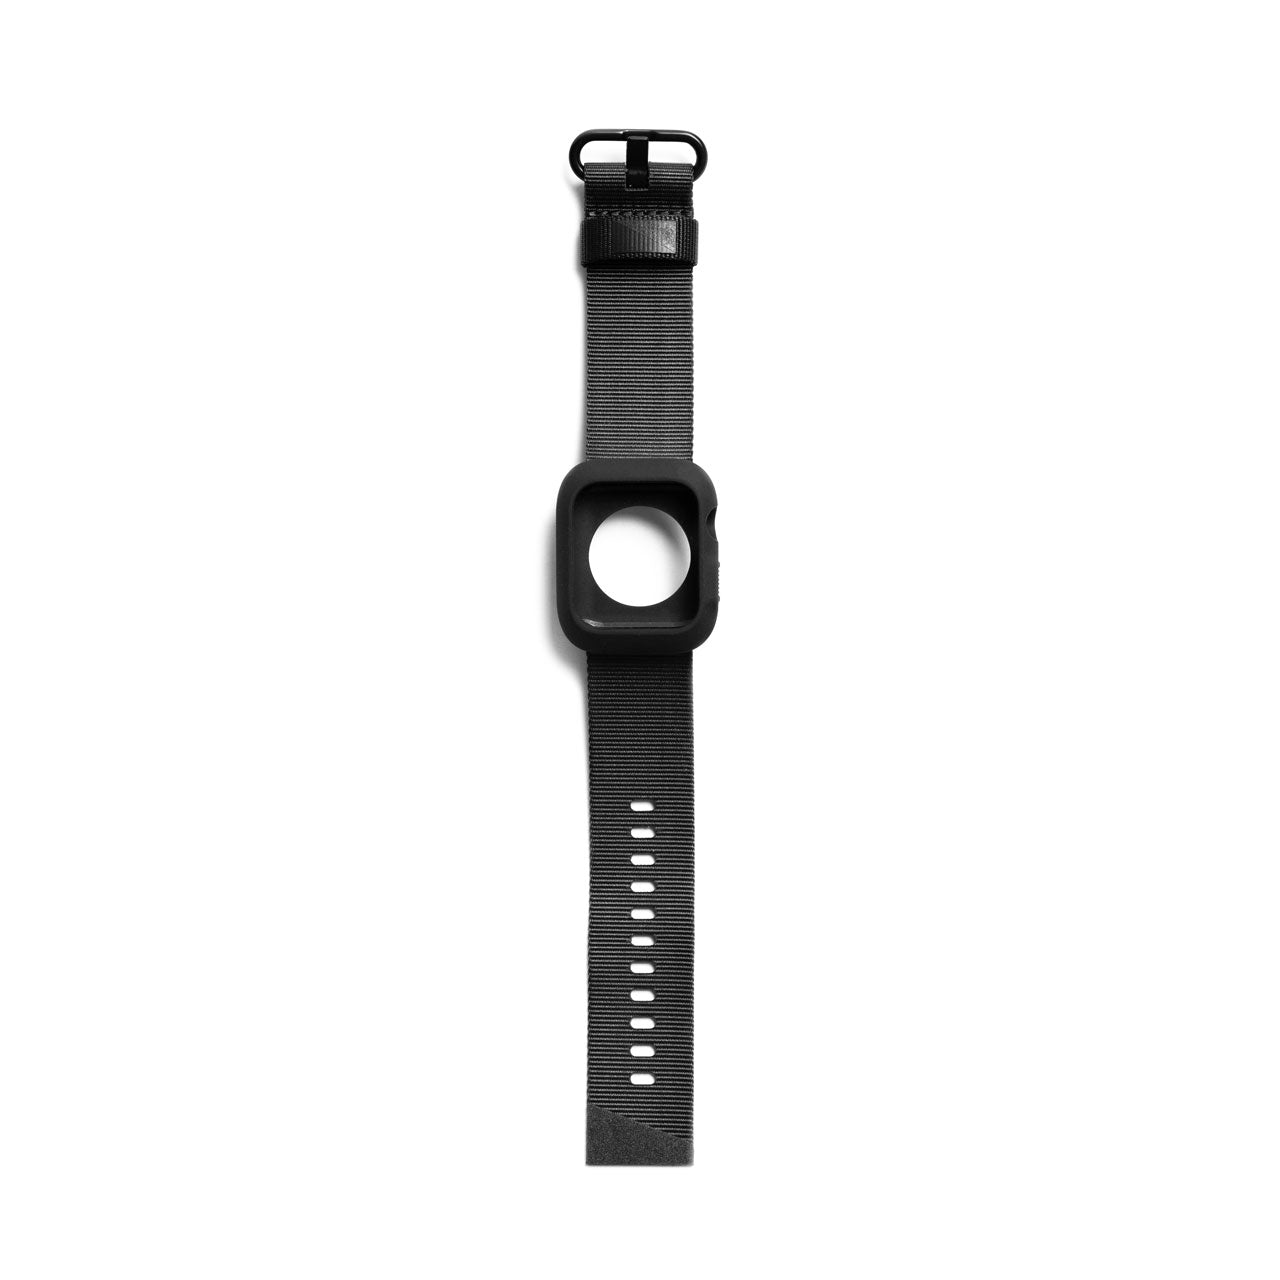 Moab Apple Watch Case + Band